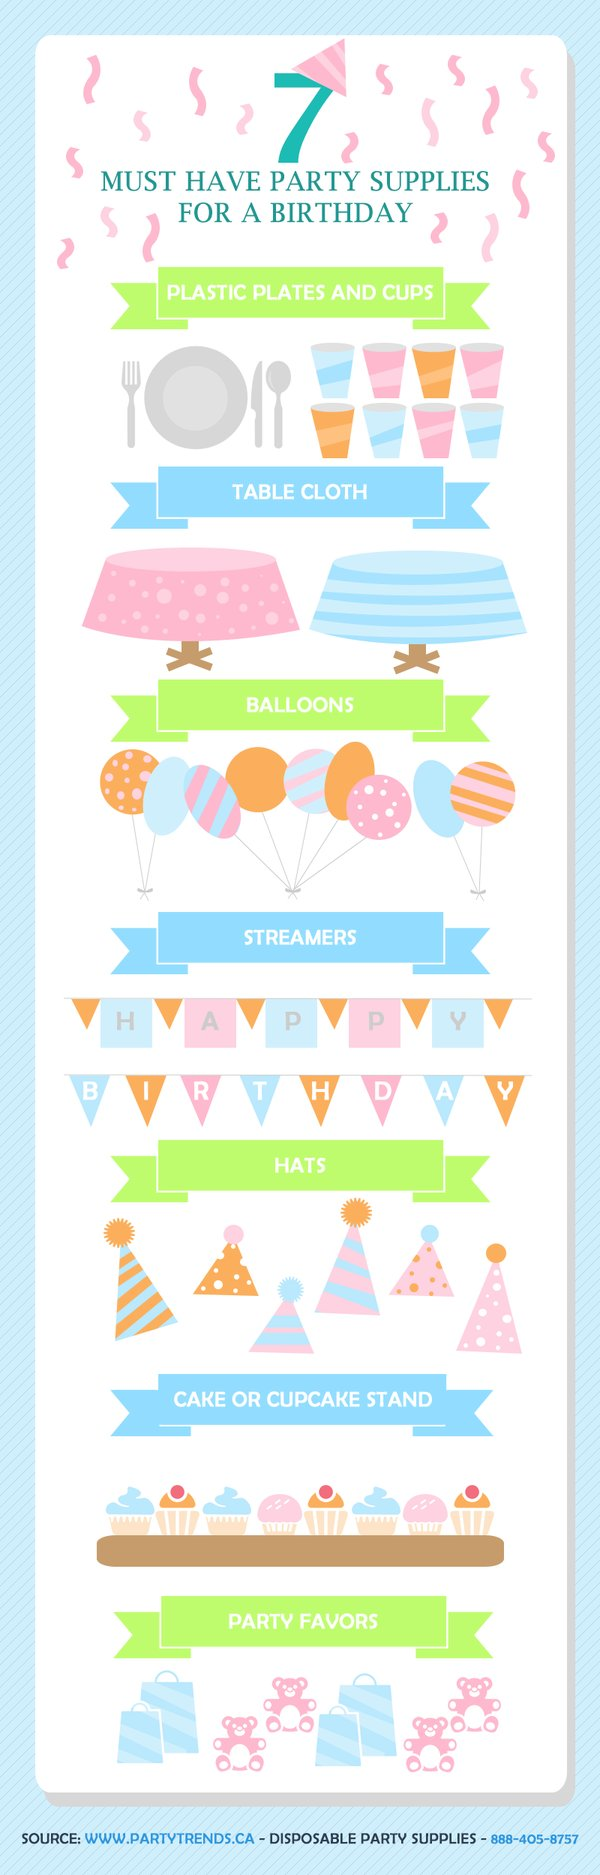 Party supplies essentials infographic | Party planning guide online Australia